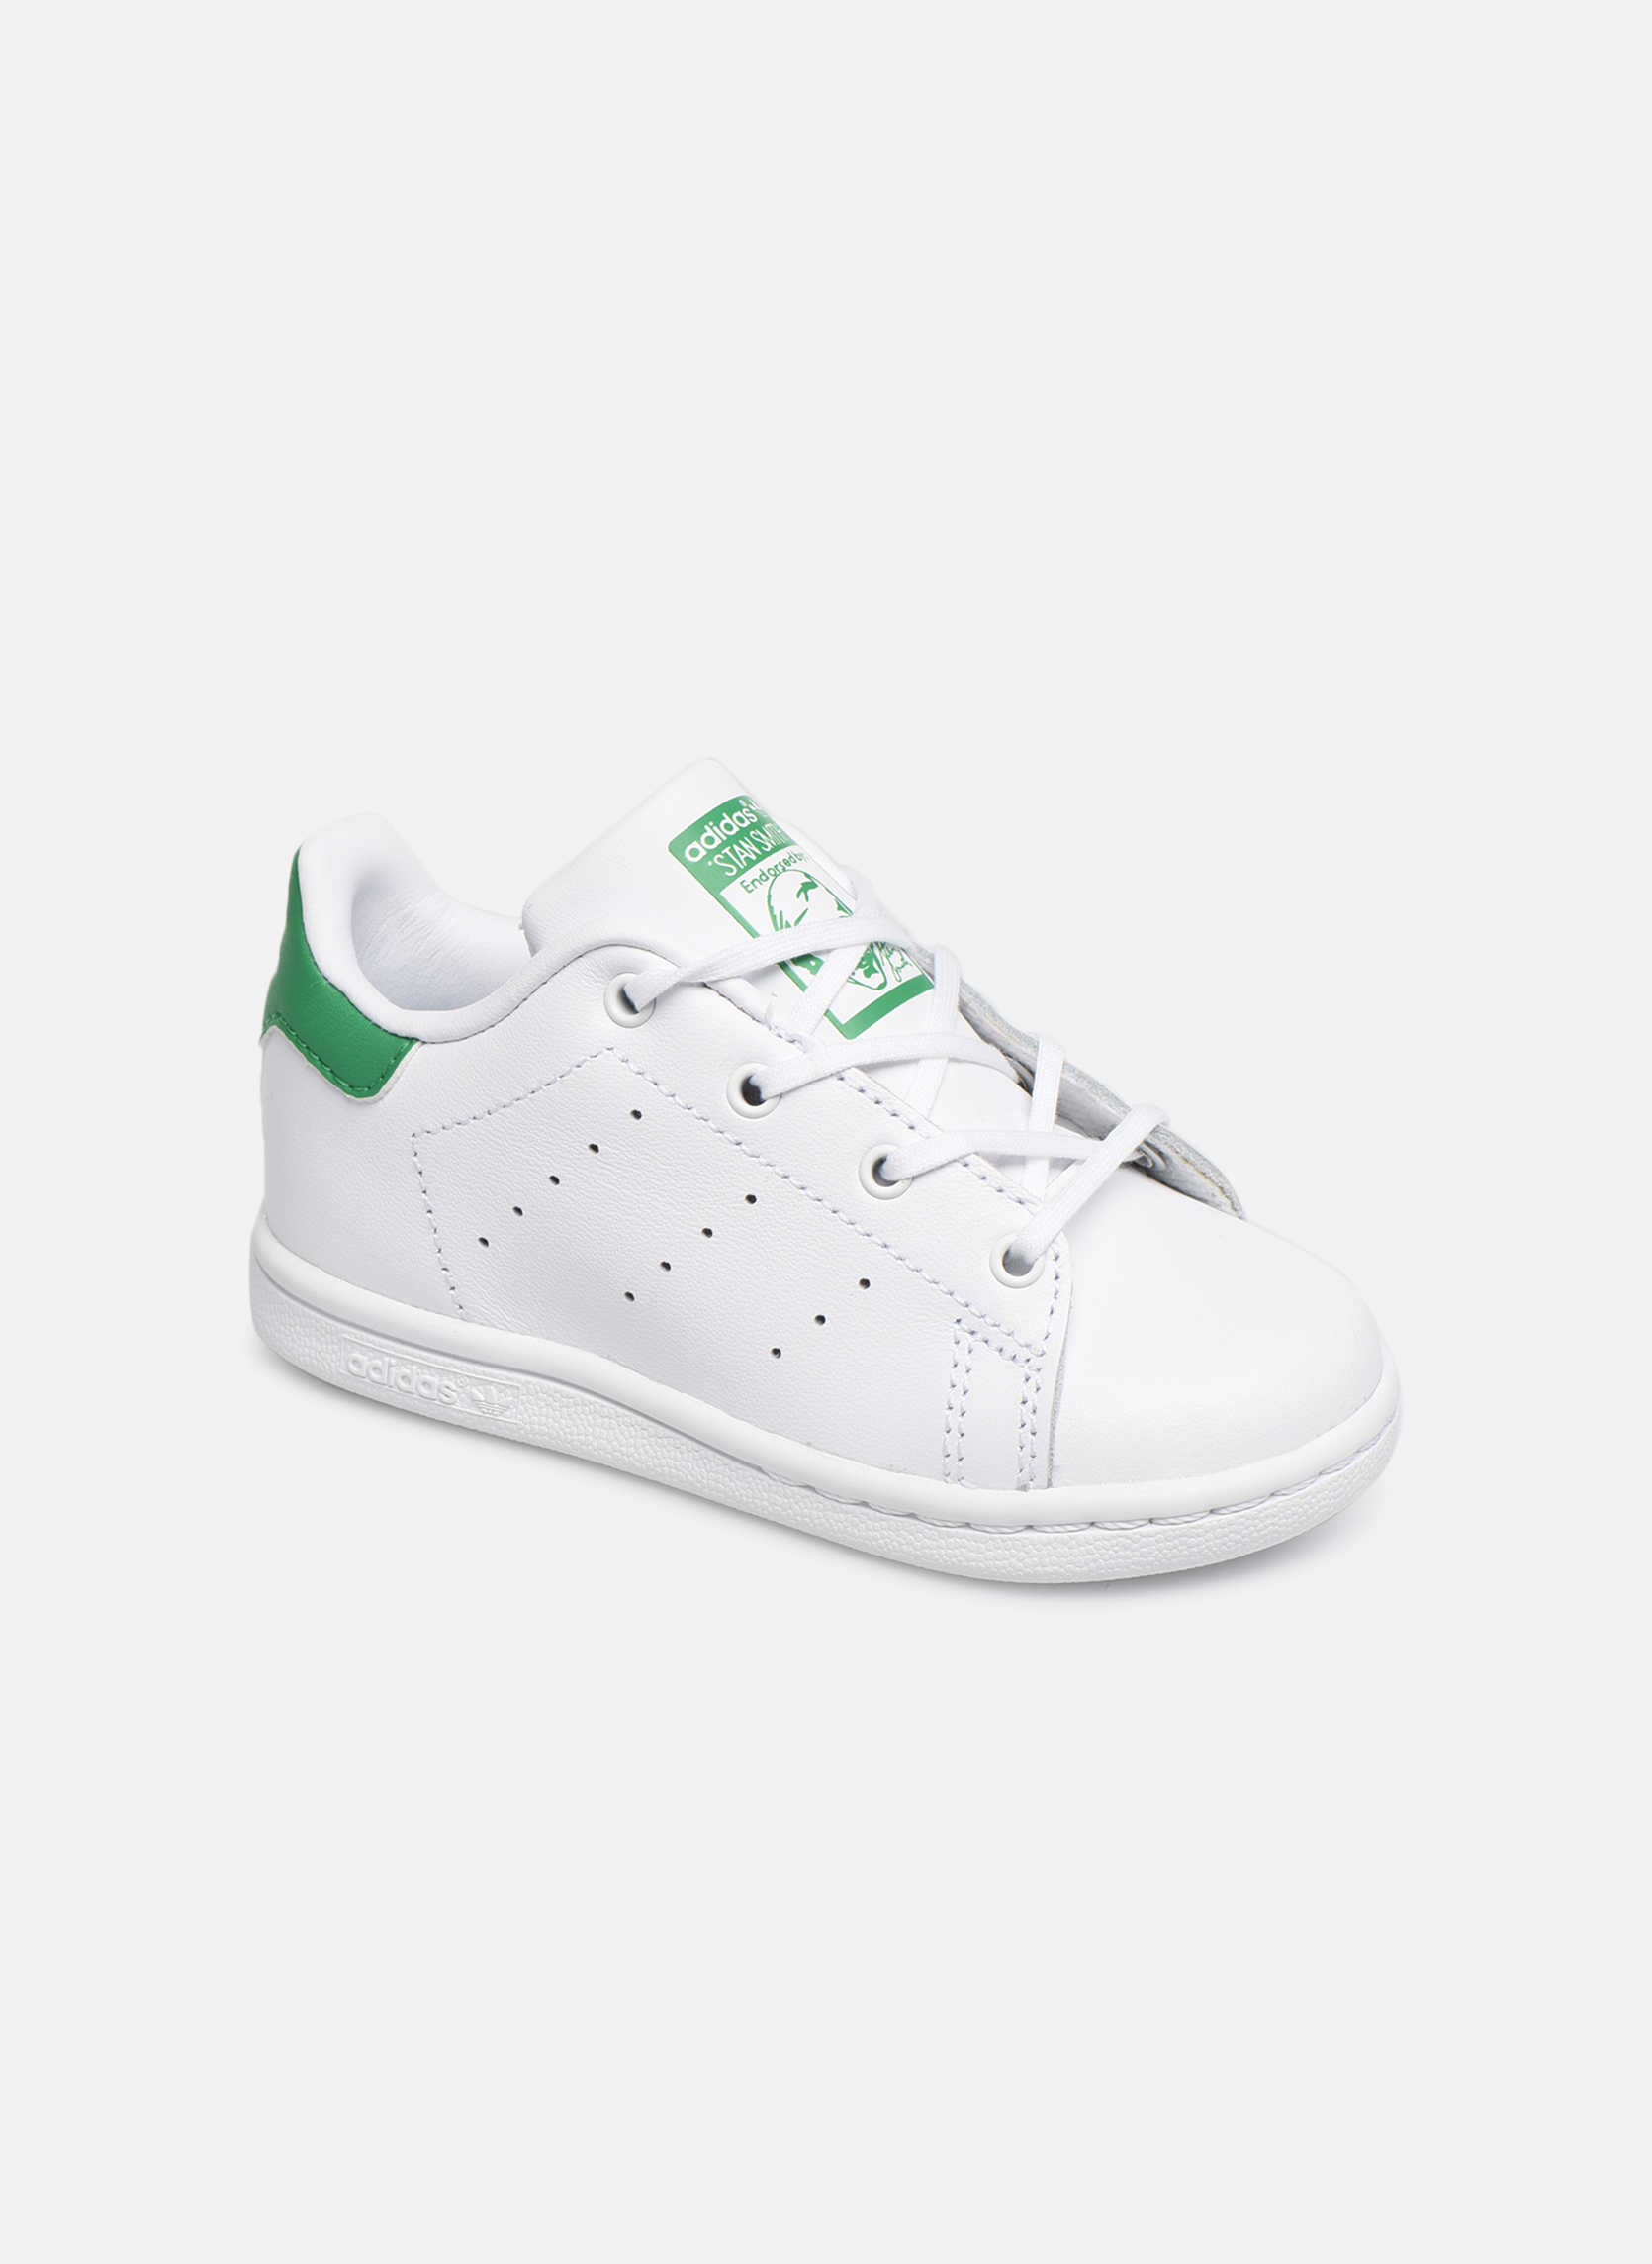 Sneaker Adidas Stan smith i